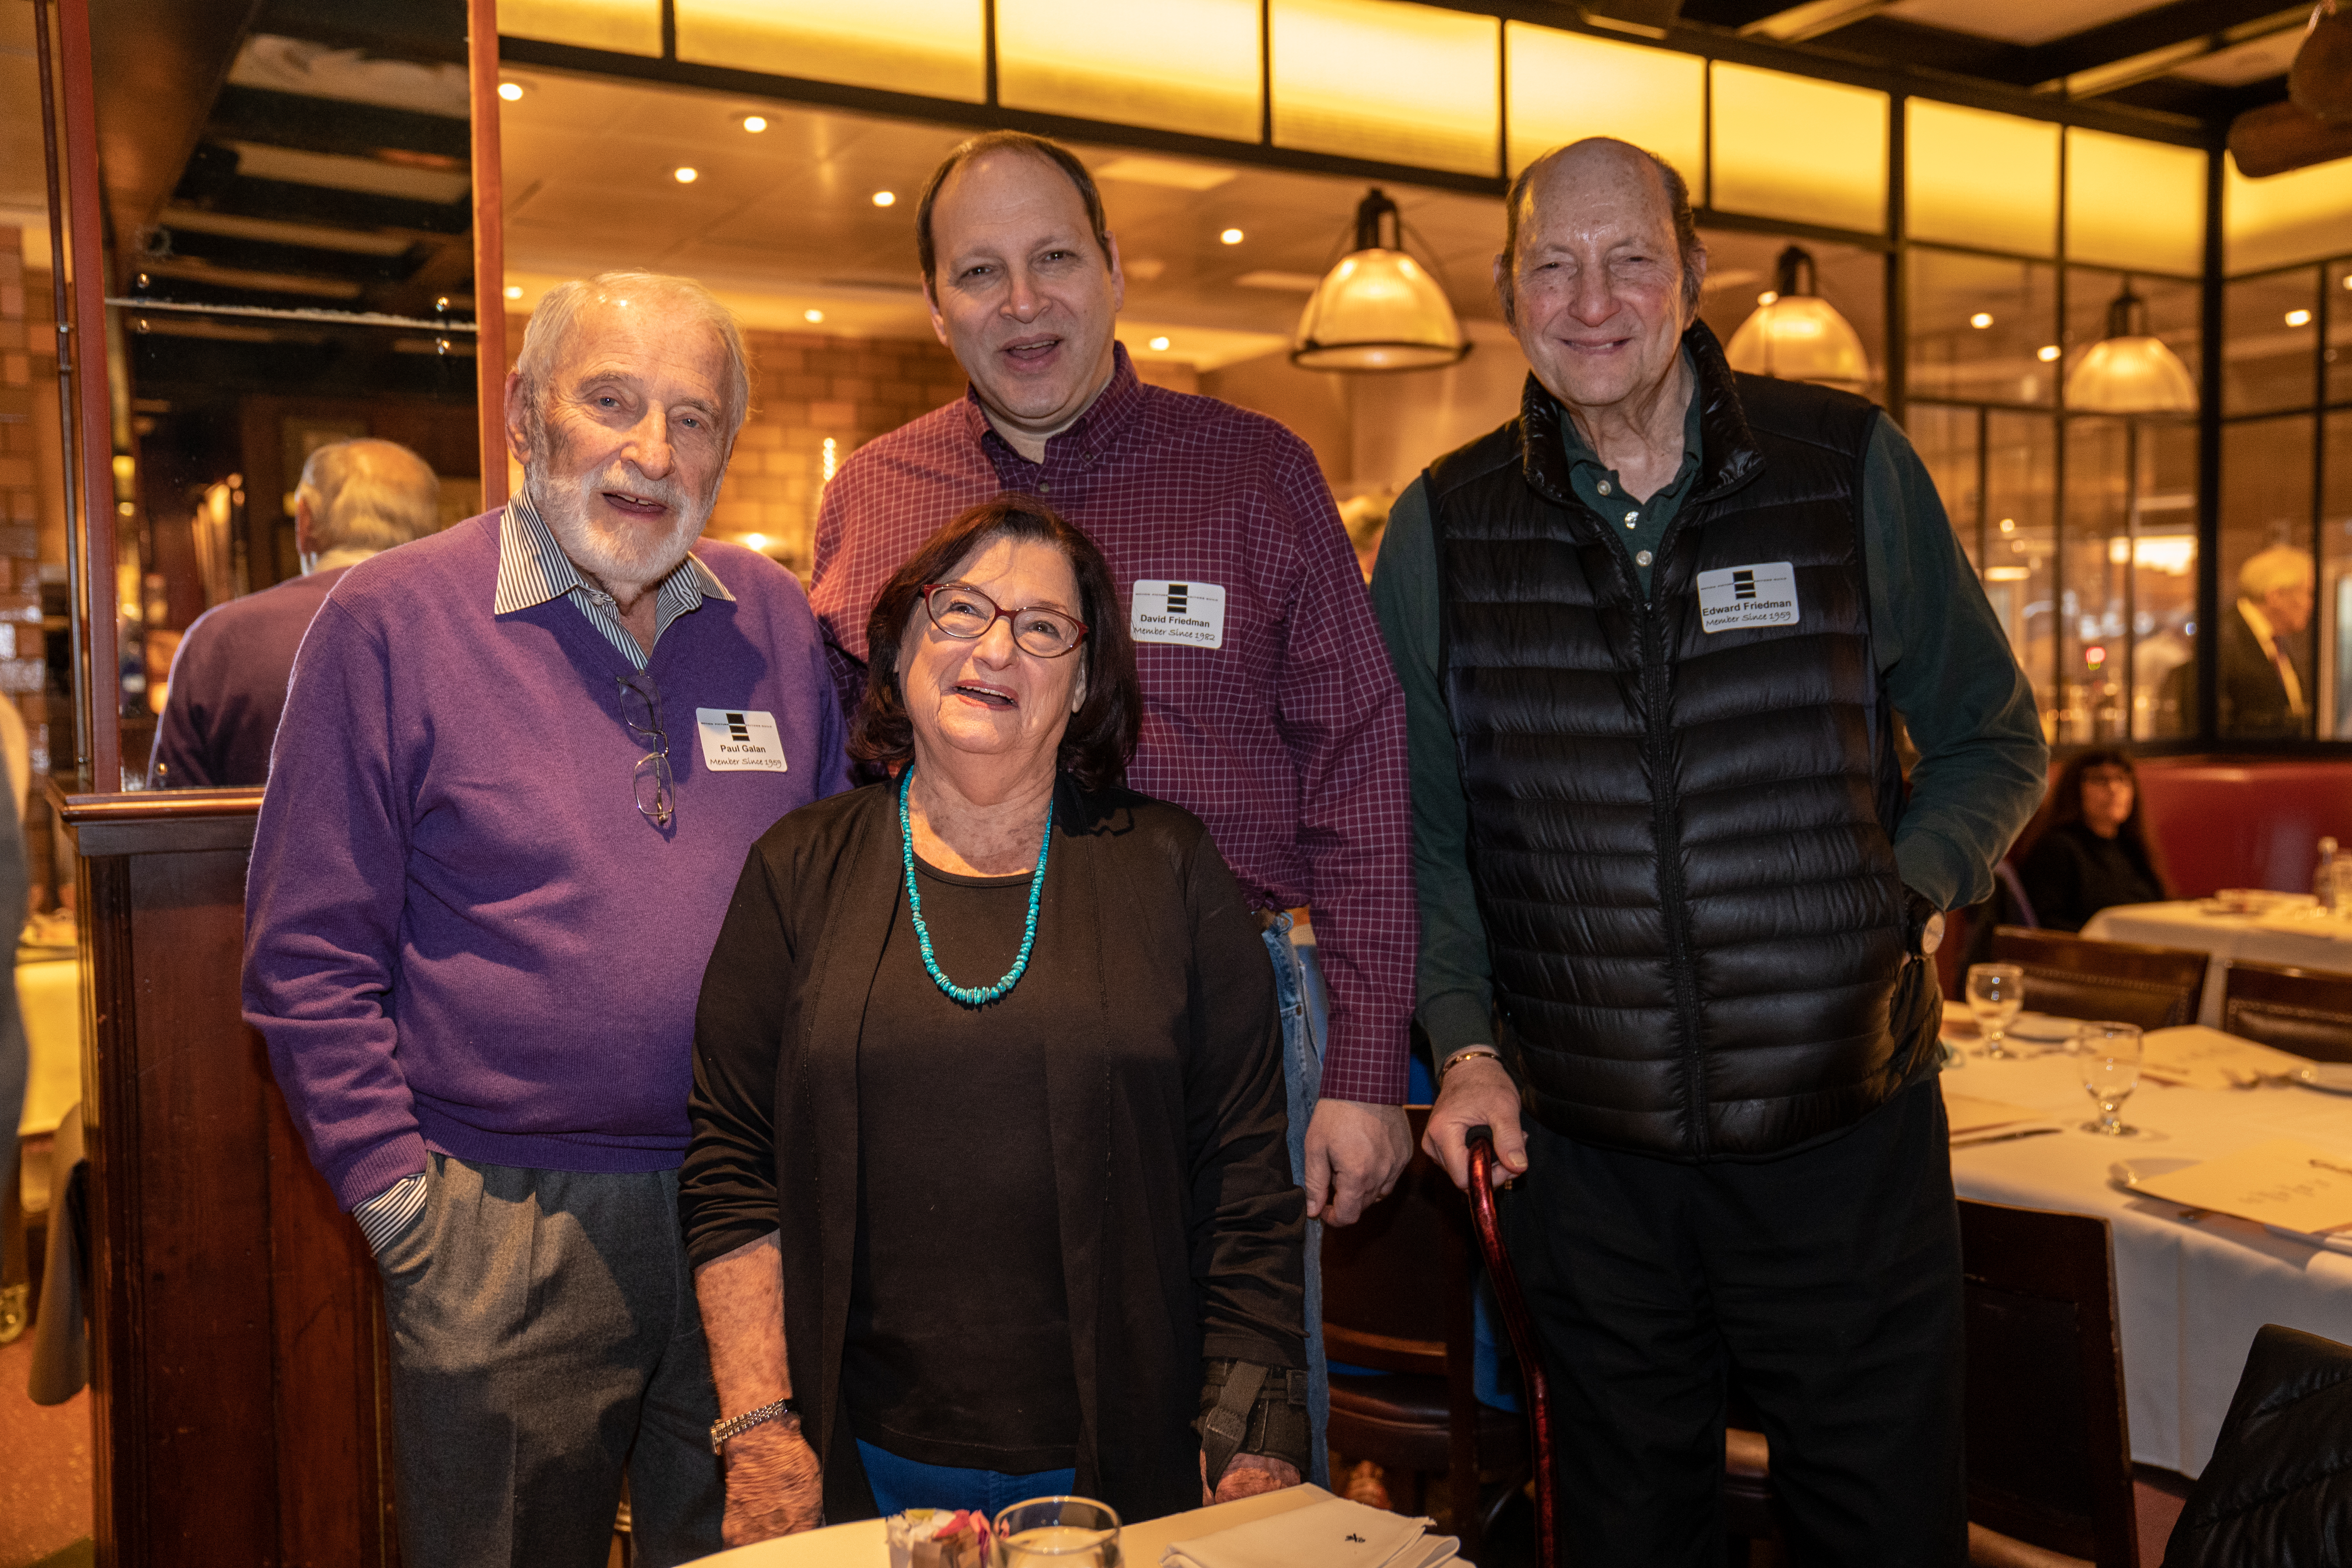 Paul Galan and Judy Galan, David and Ed Friedman